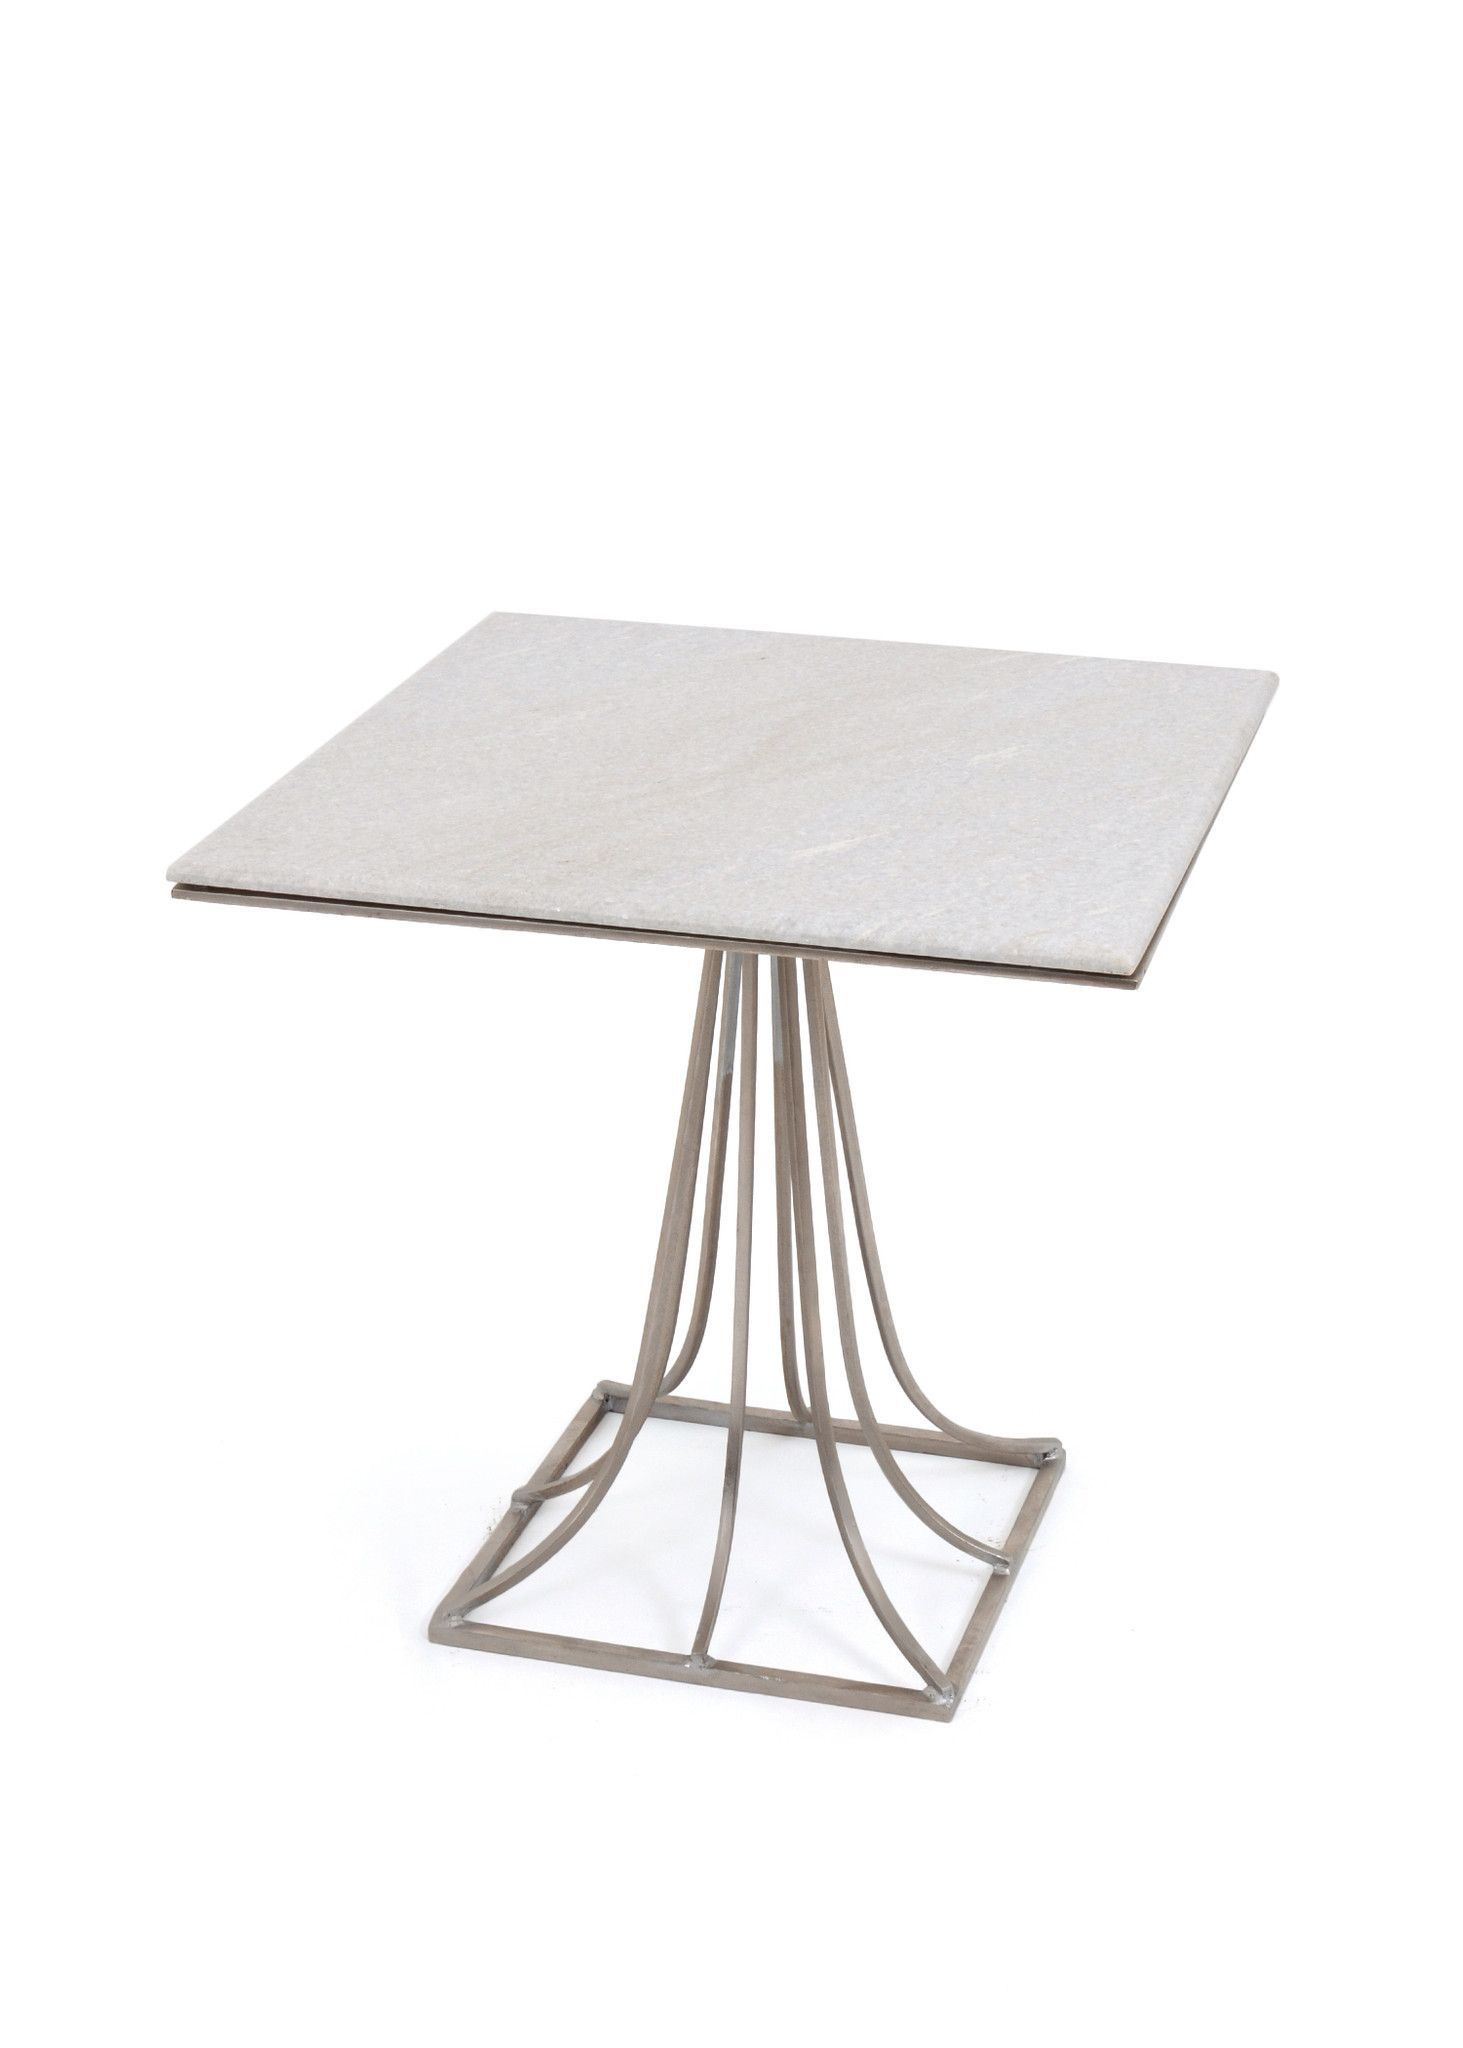 Marietta Side Table with Marble Top on Brushed Nickel Base